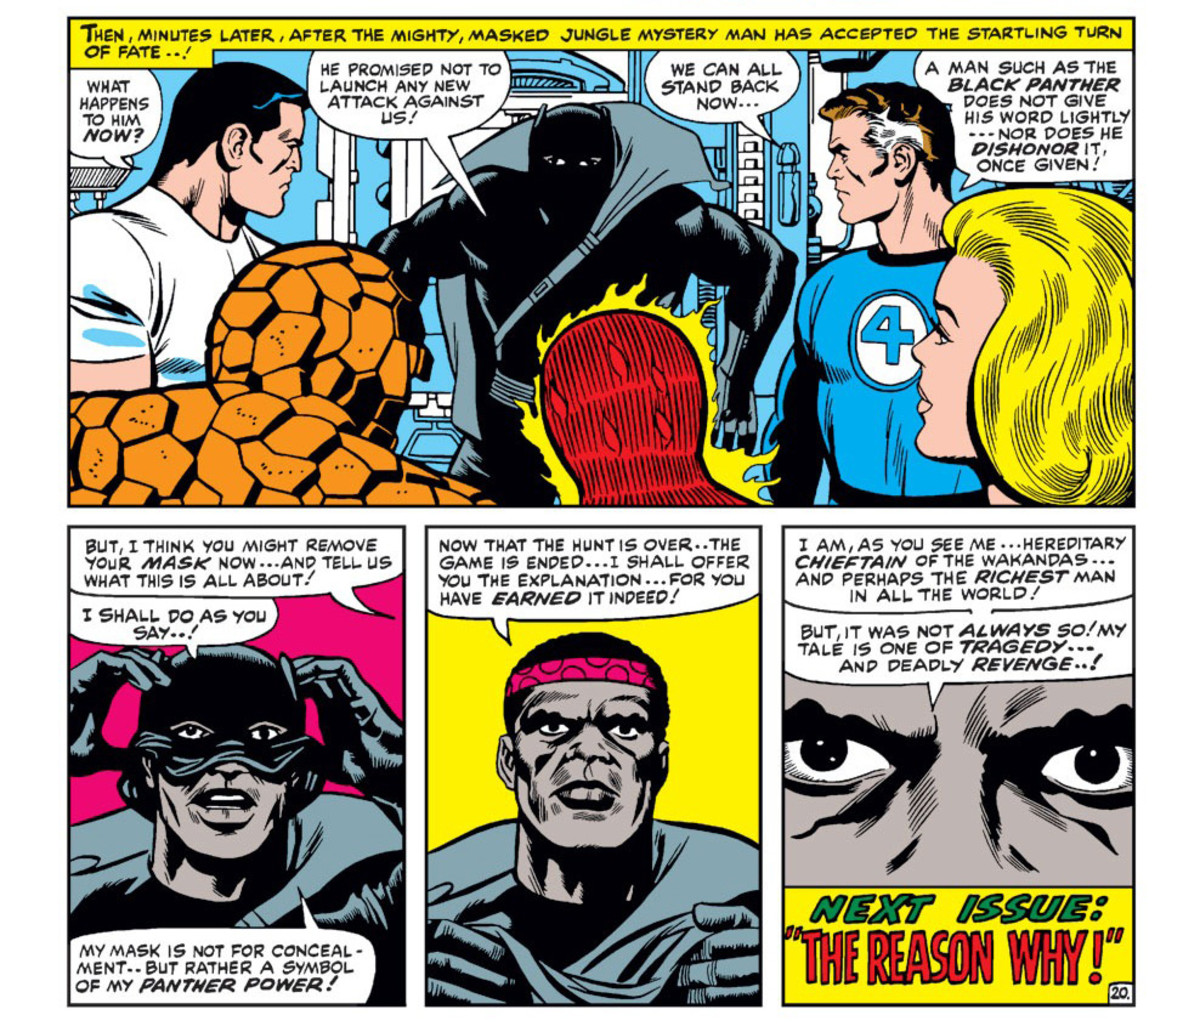 Panels from Fantastic Four #52 by Marvel Comics.